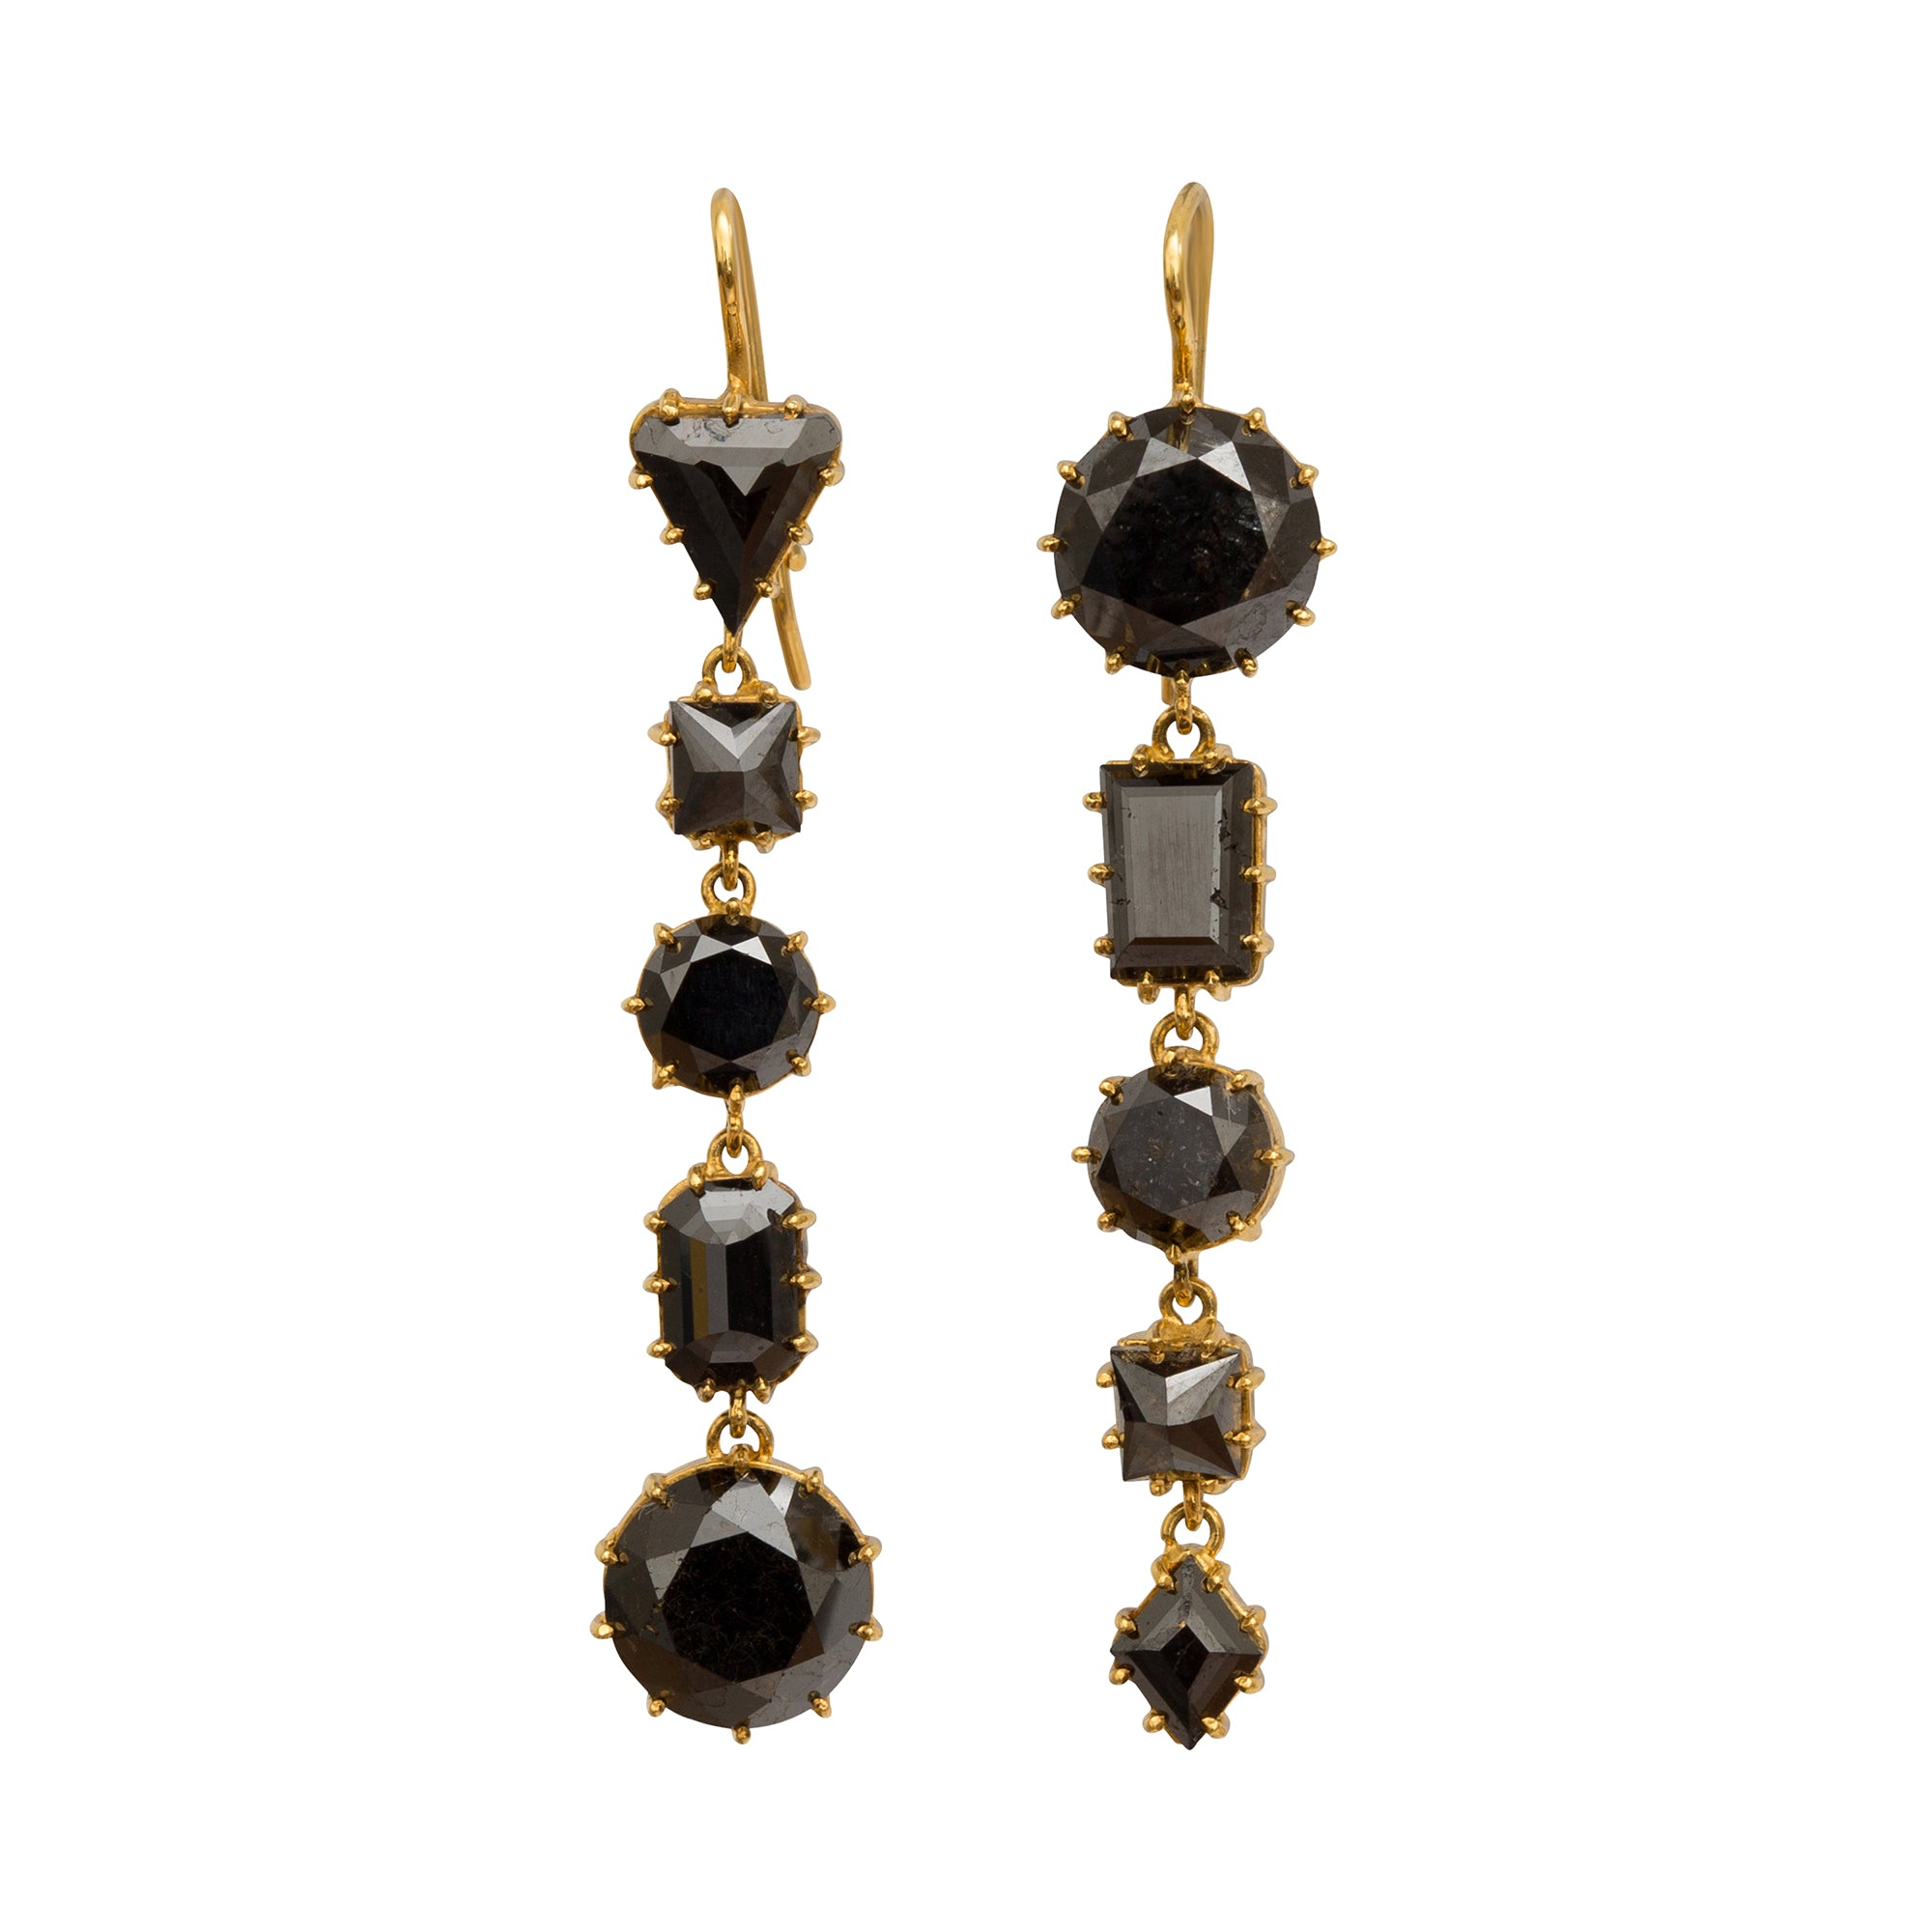 Black Diamond Earrings by Renee Lewis for Broken English Jewelry